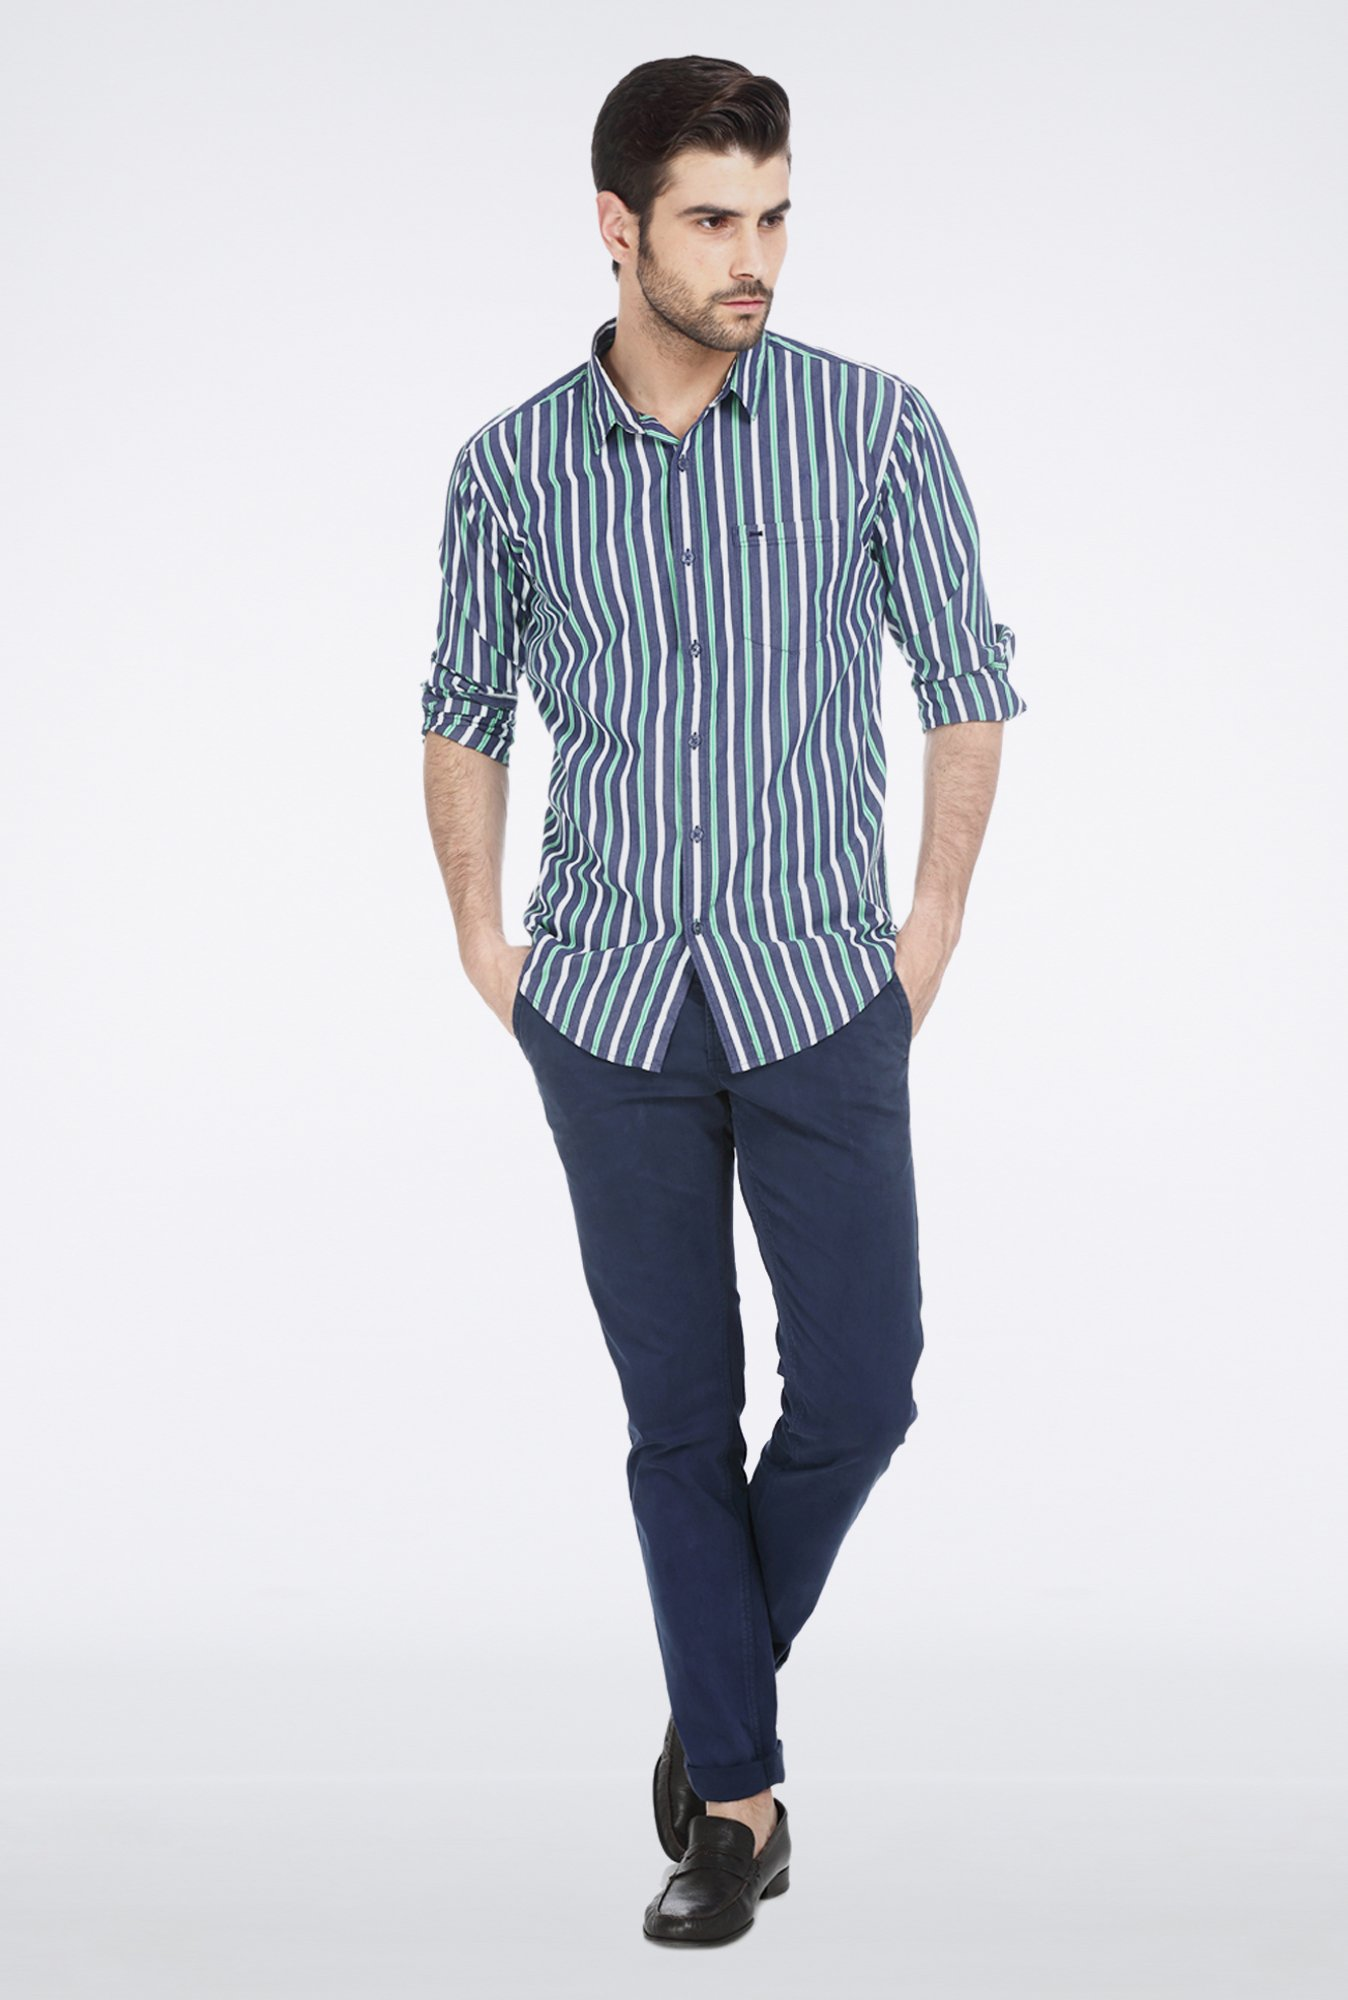 Basics Green Striped Shirt